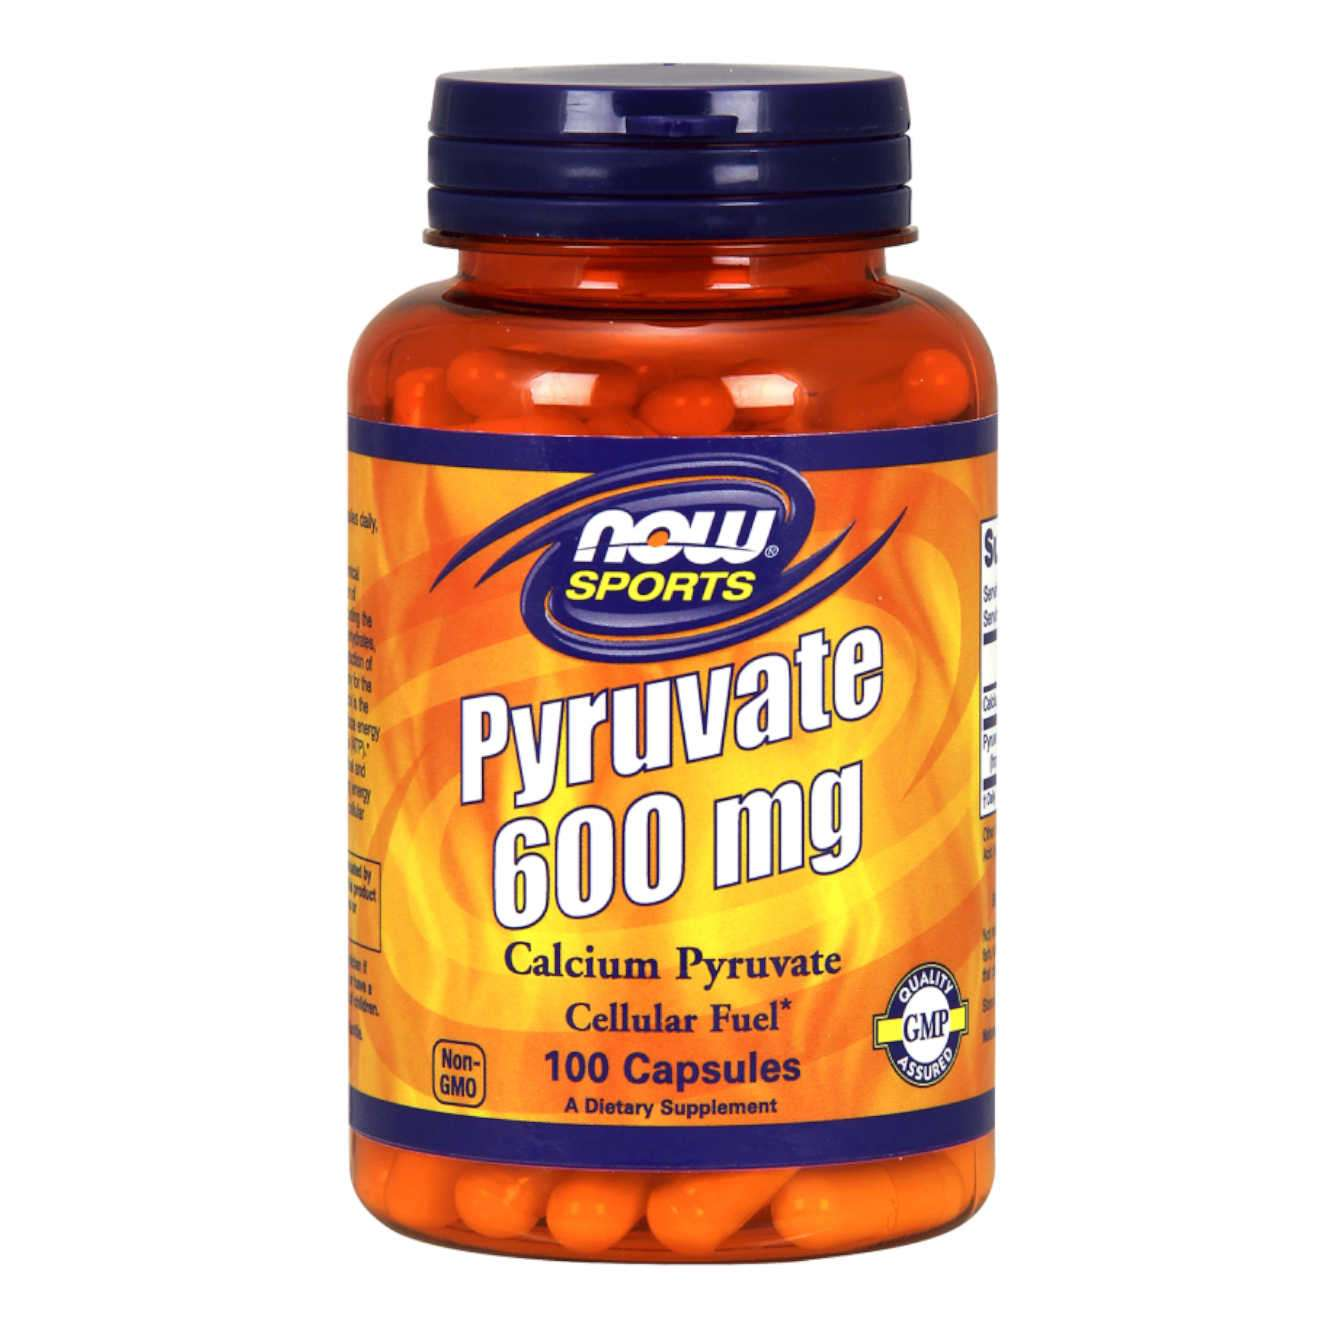 PYRUVATE 600mg - 100 caps